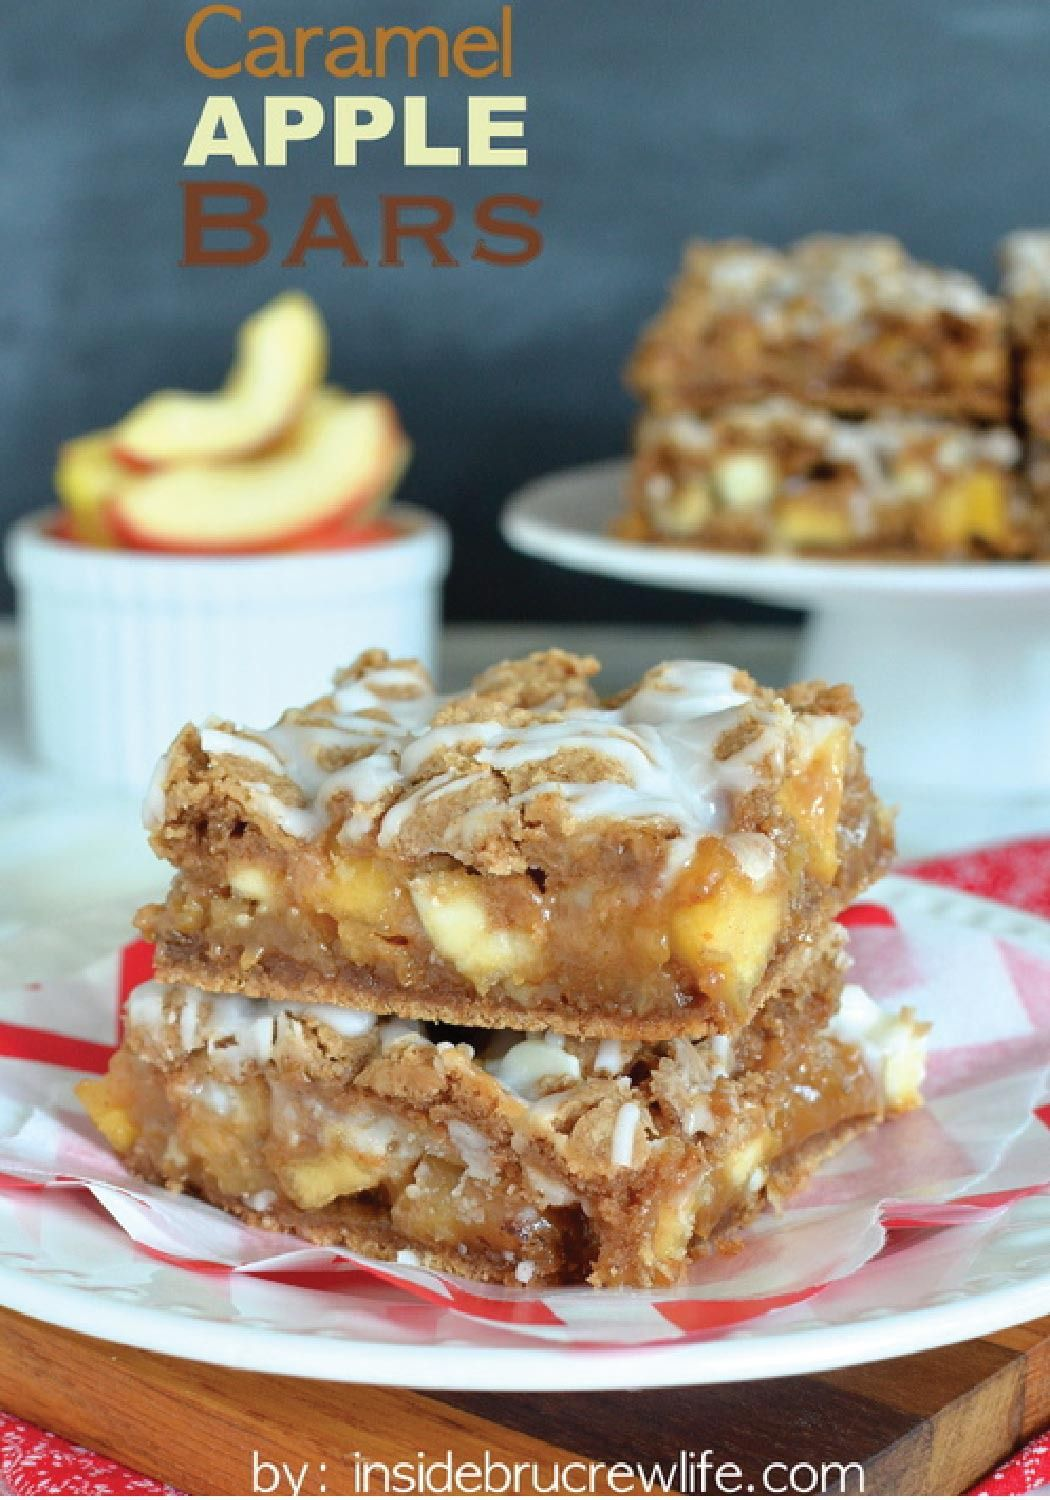 Caramel Apple Bars Cake Mix Bars Get A Fun Twist When Filled With